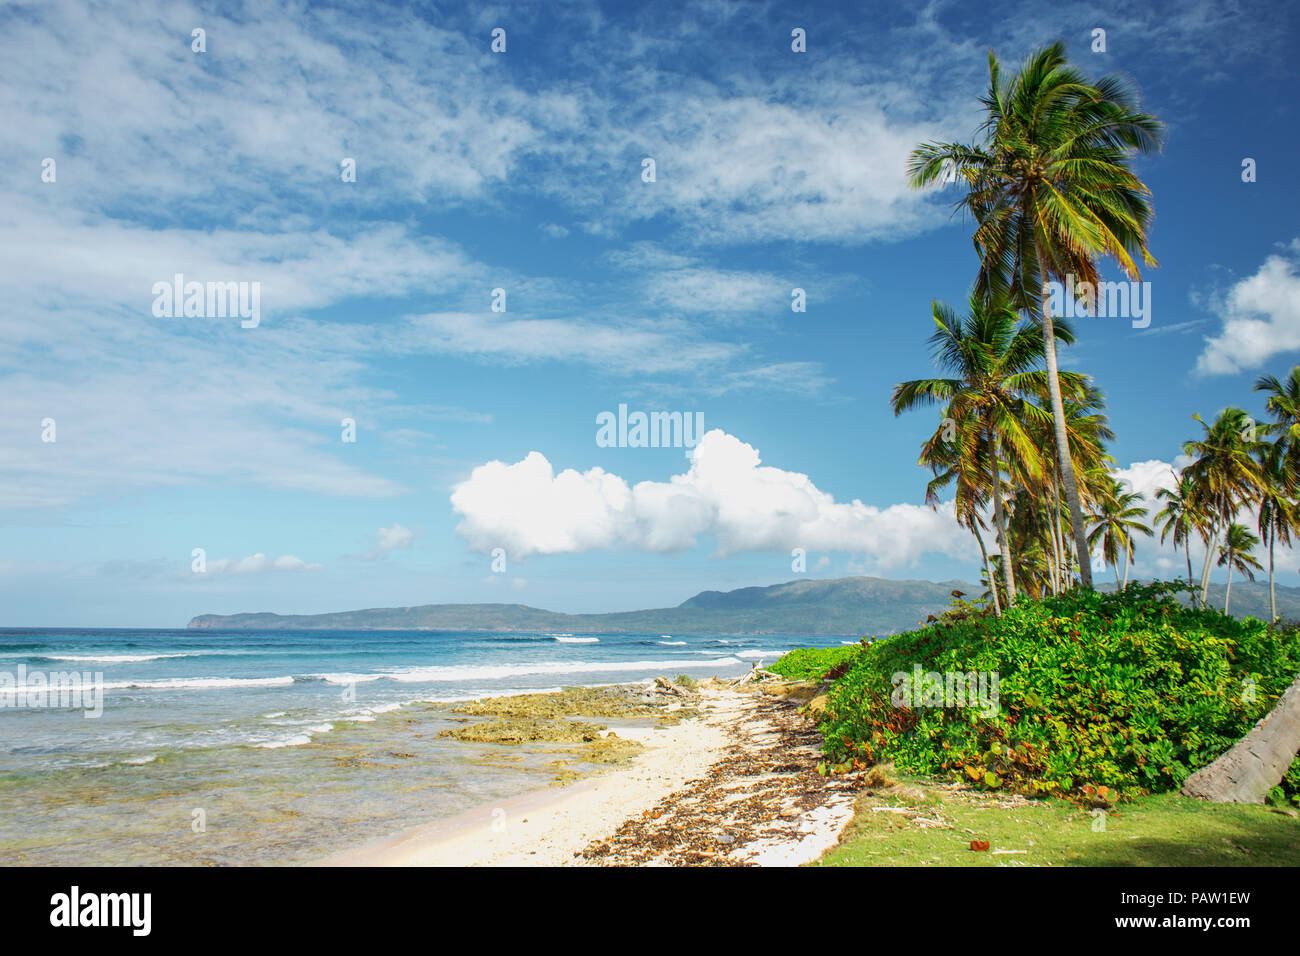 stunning picturesque scenic beautiful Caribbean landscape, Dominican Republic - Stock Image